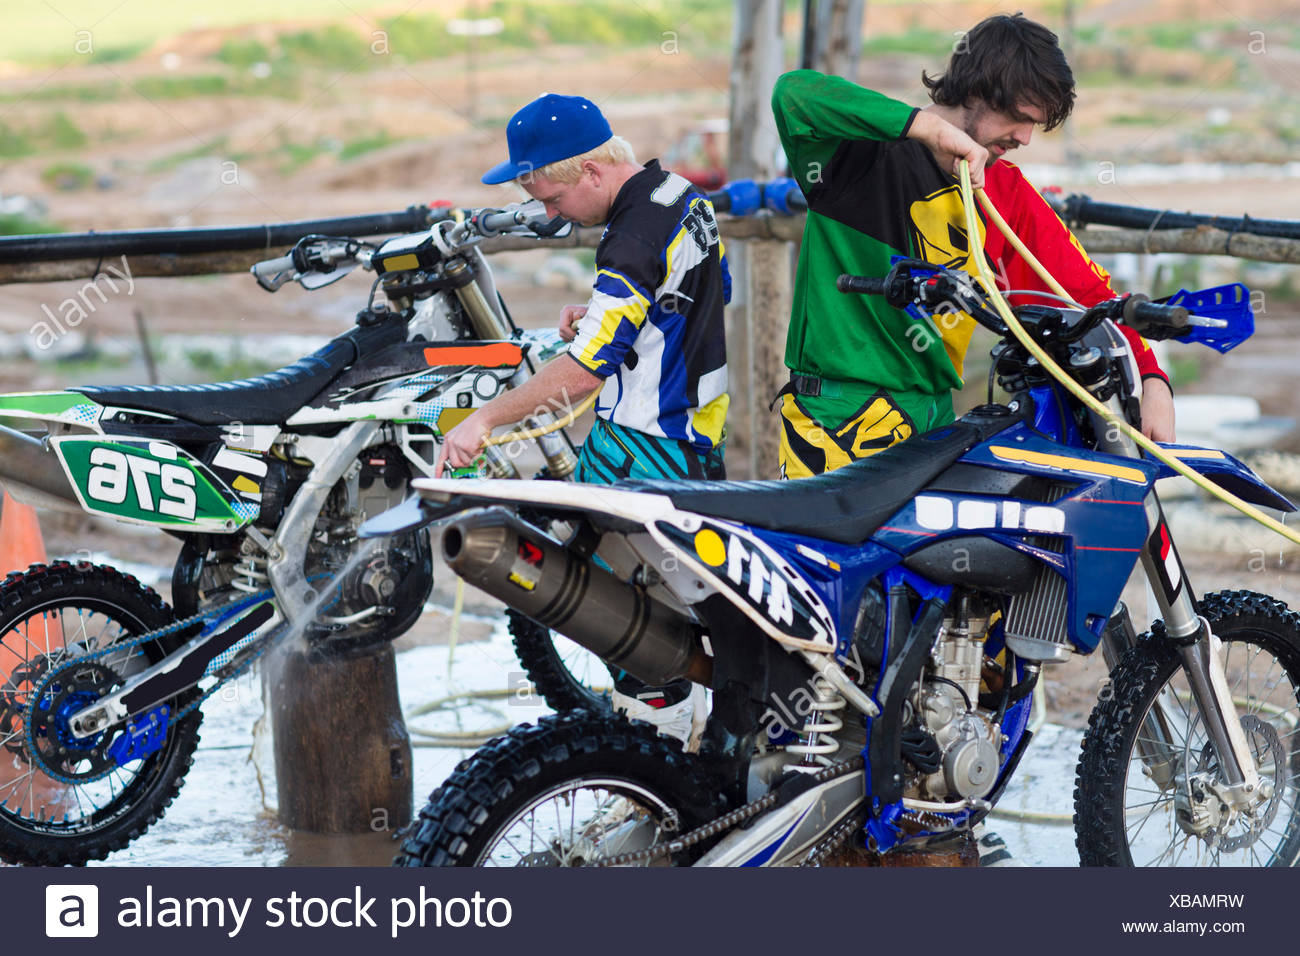 Two male motocross competitors cleaning motorcycles with water hoses - Stock Image